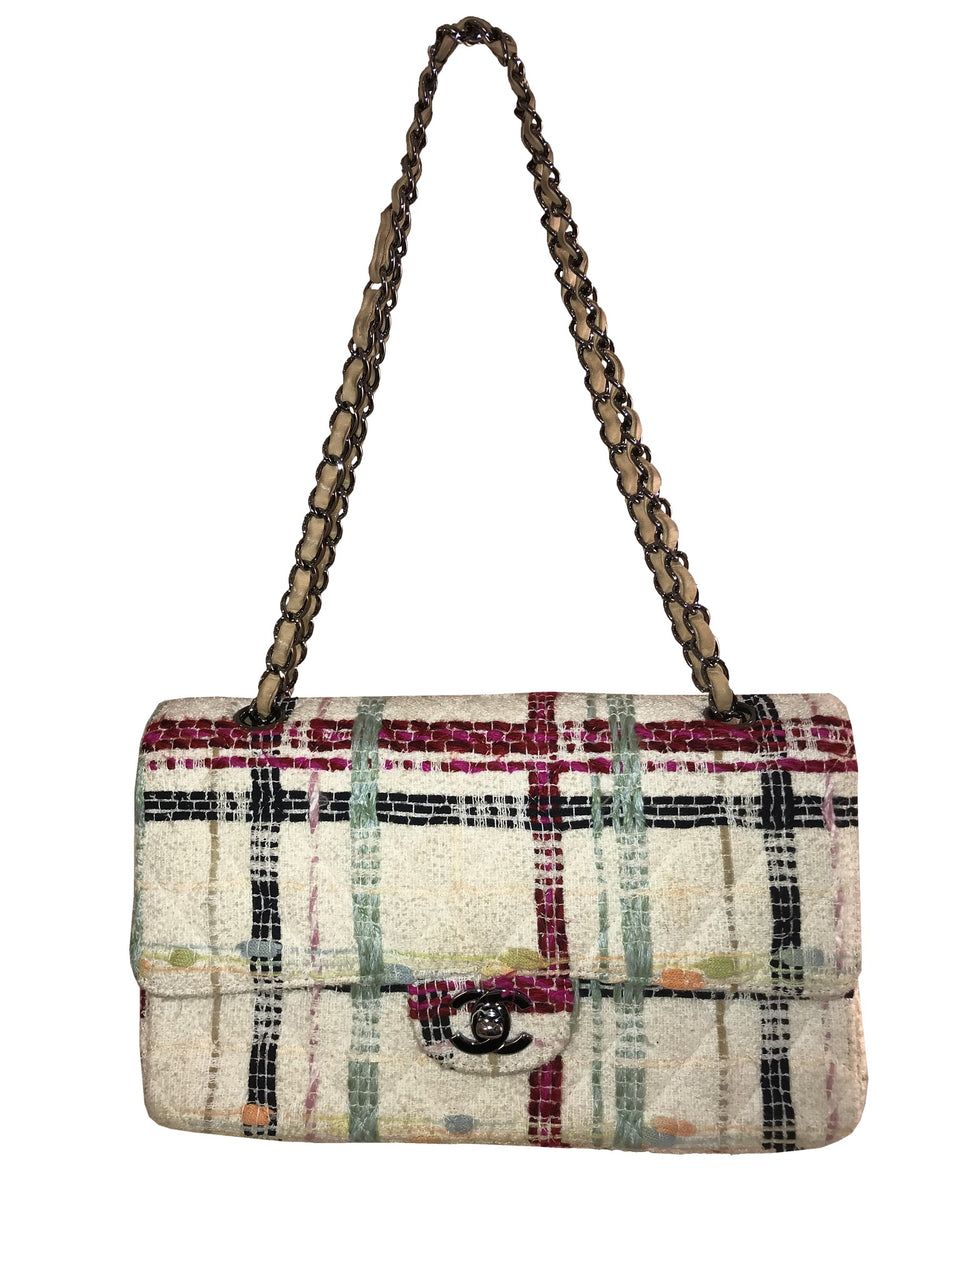 Ivory Tweed Bag with Beige Leather Chain